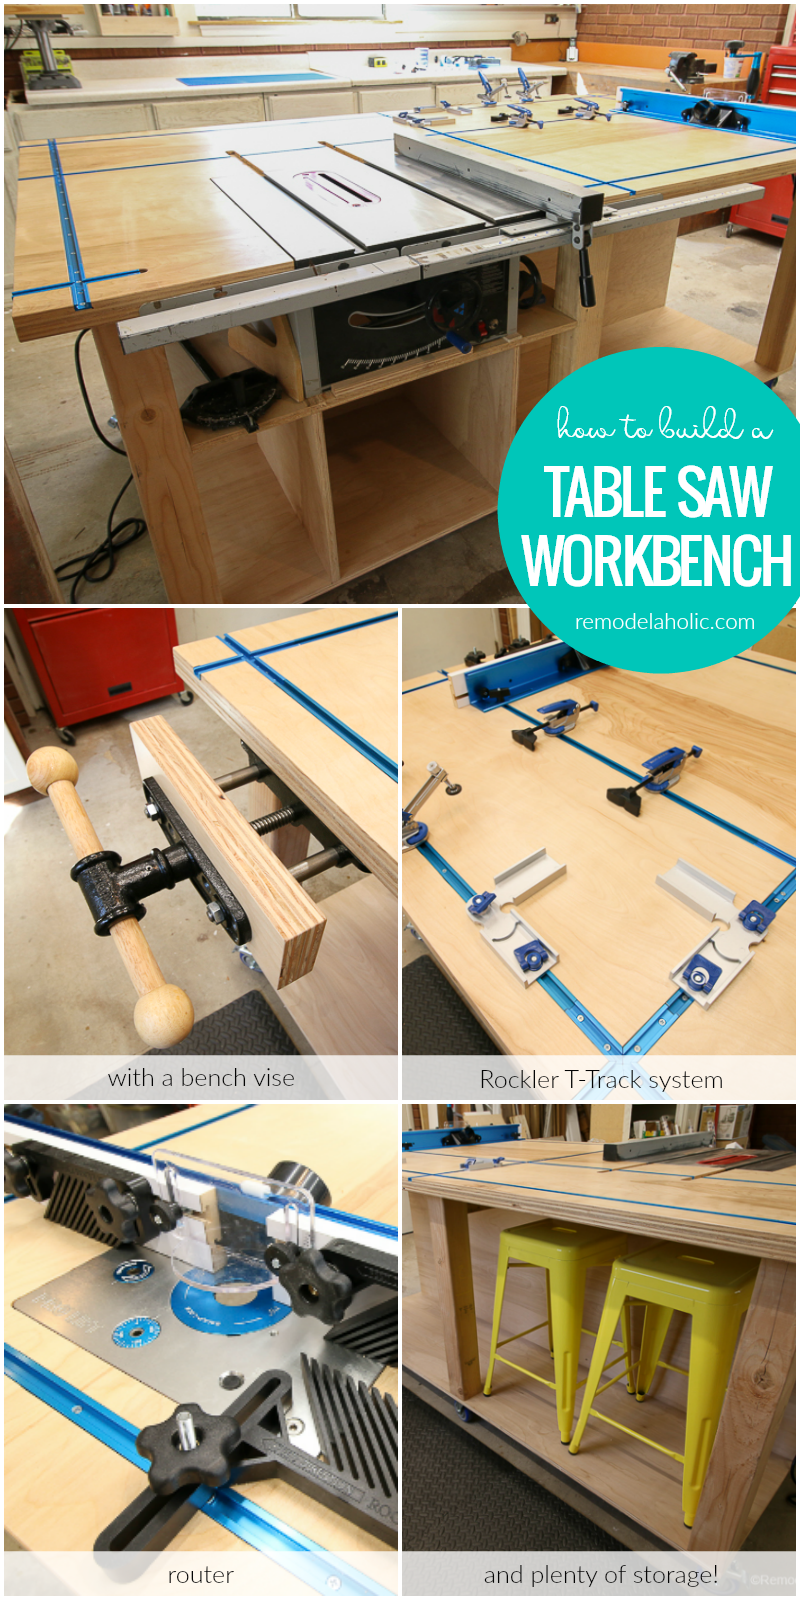 Build A Table Saw Workbench With A Bench Vise, Rockler T Track System,  Router